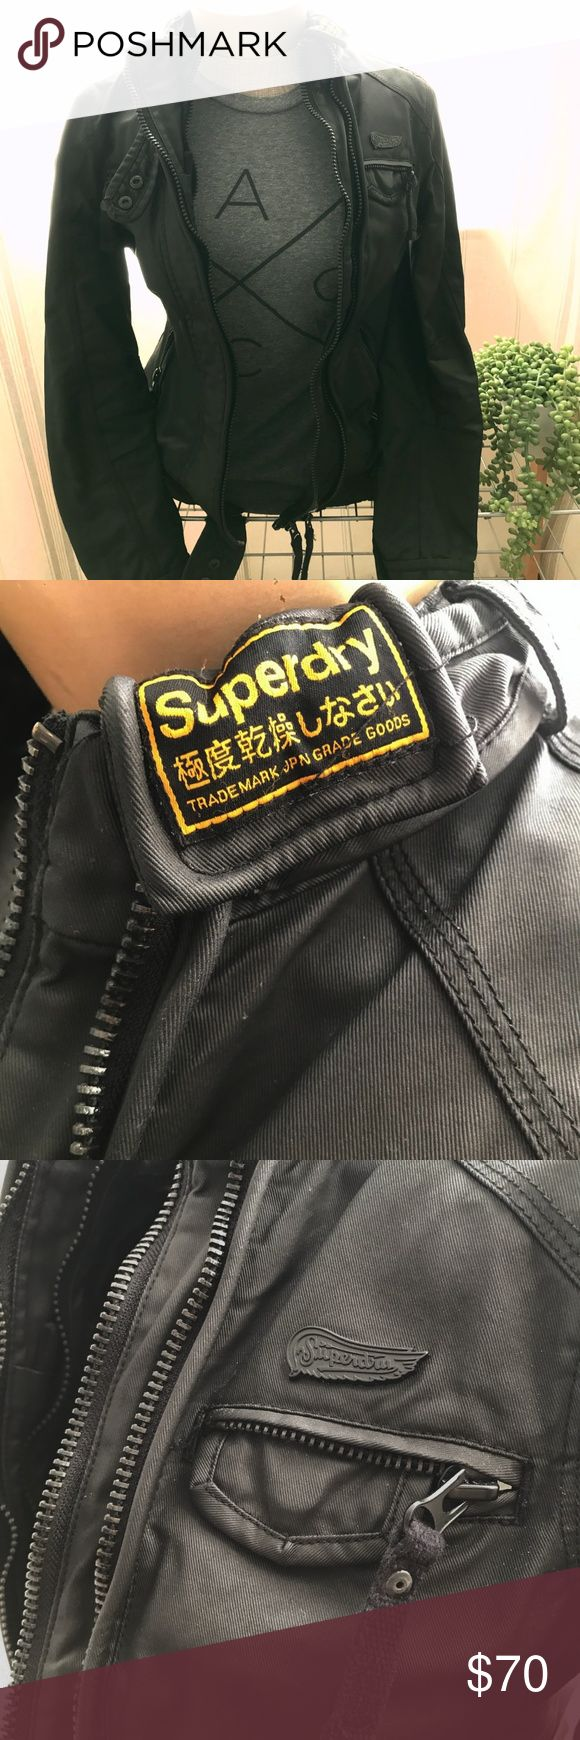 "*MOVING SALE* Superdry Black Motorcycle Jacket This is an authentic Superdry jacket in a black motorcycle design. The jacket is quite heavy but is 100% cotton for both the shell and interior. It has a ""waxed"" cotton look on the exterior. If you like pockets, you will love this piece - it has so many hidden compartments across the front and even in the sleeves! Only worn twice and in like-new condition. Superdry Jackets & Coats"